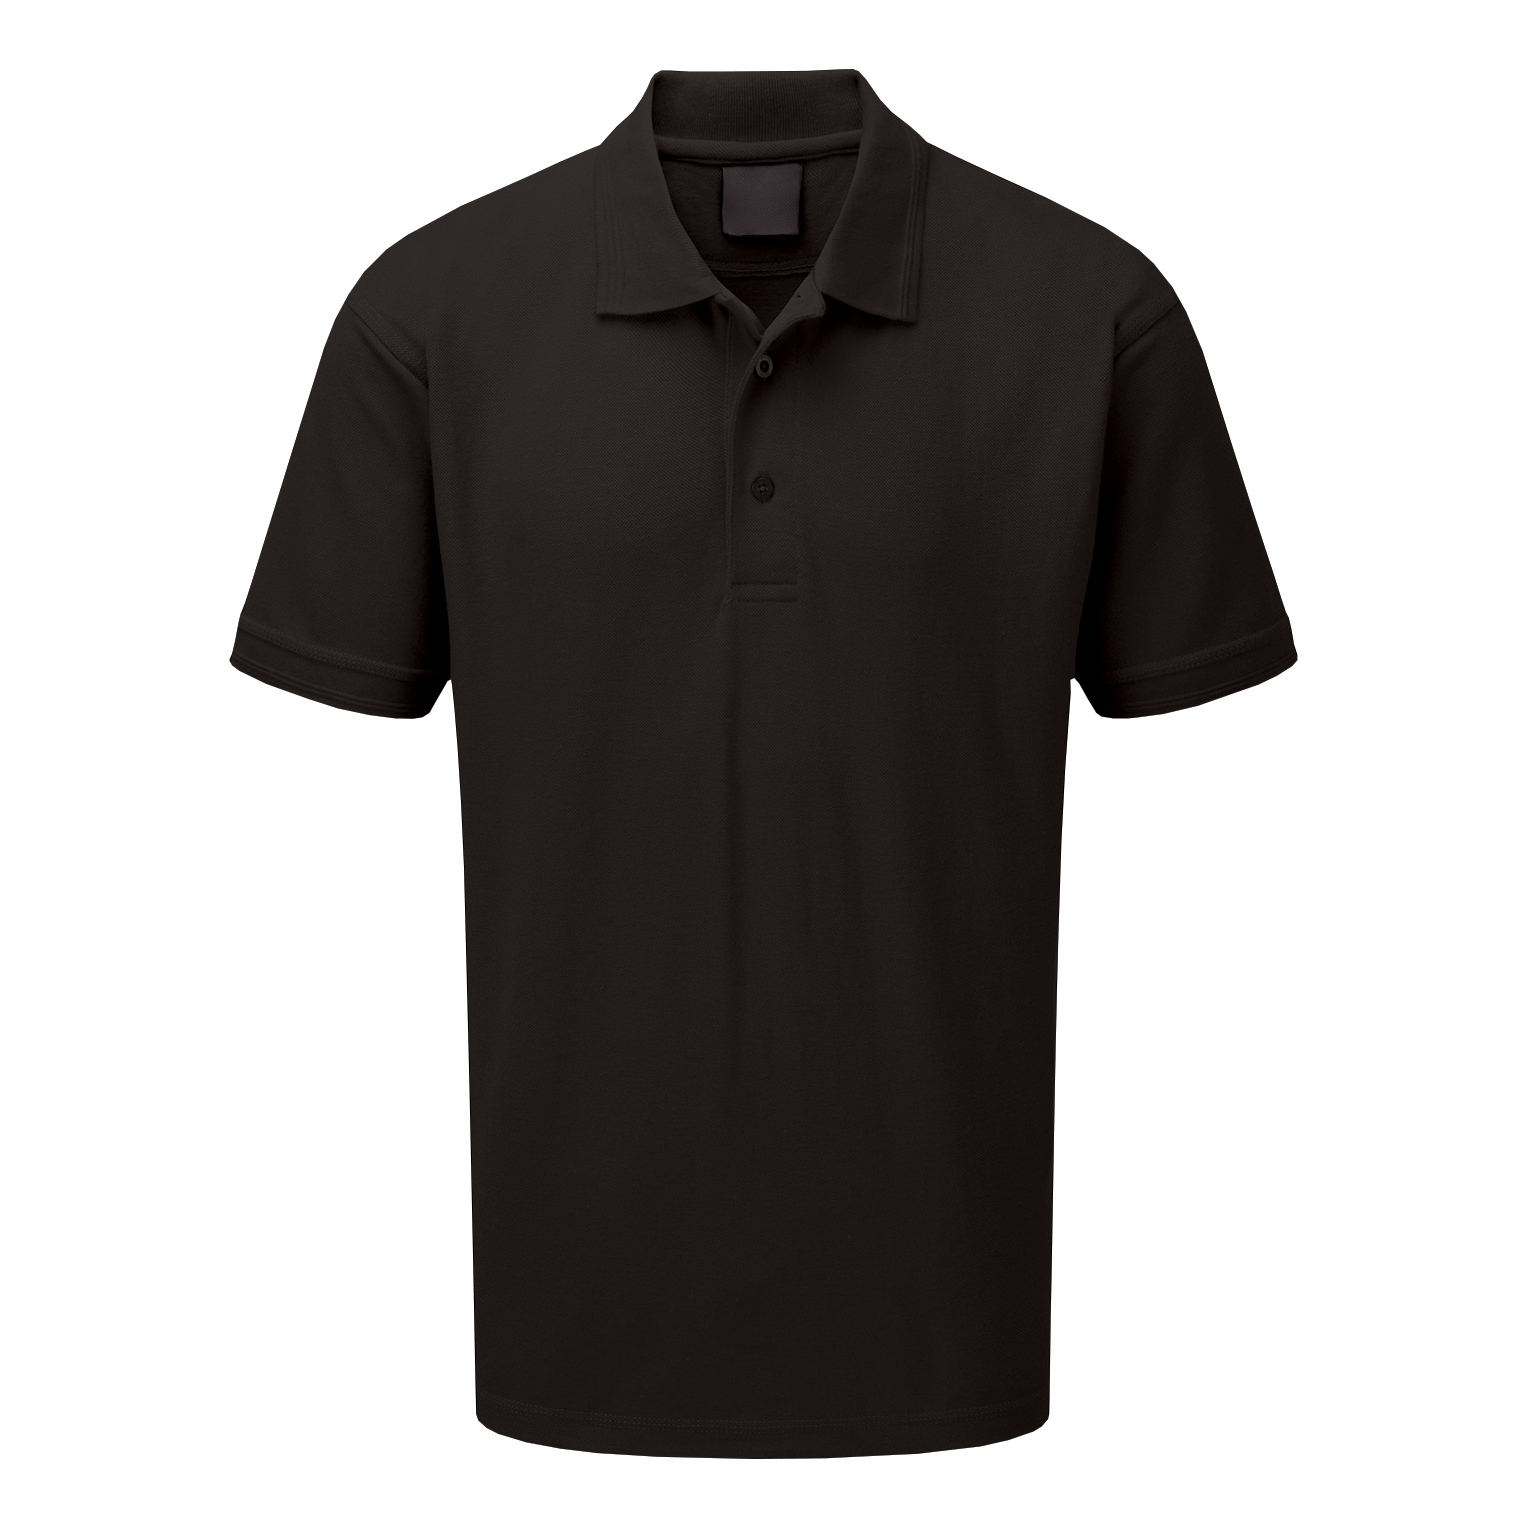 Click Workwear Polo Shirt Polycotton 200gsm 2XL Black Ref CLPKSBLXXL 1-3 Days Lead Time